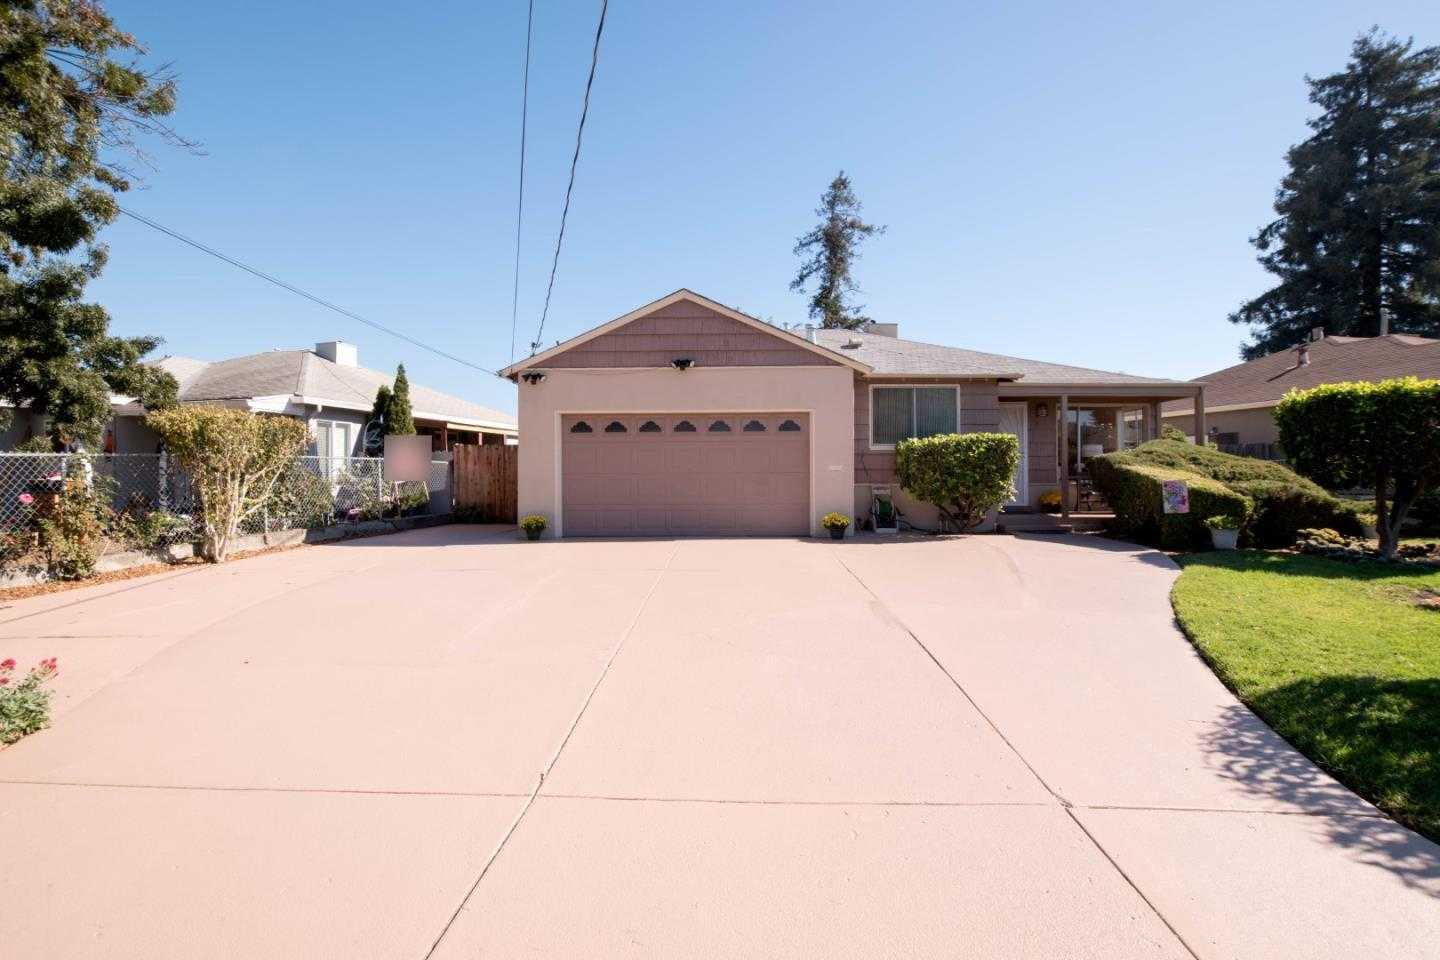 $950,000 - 4Br/2Ba -  for Sale in East Palo Alto